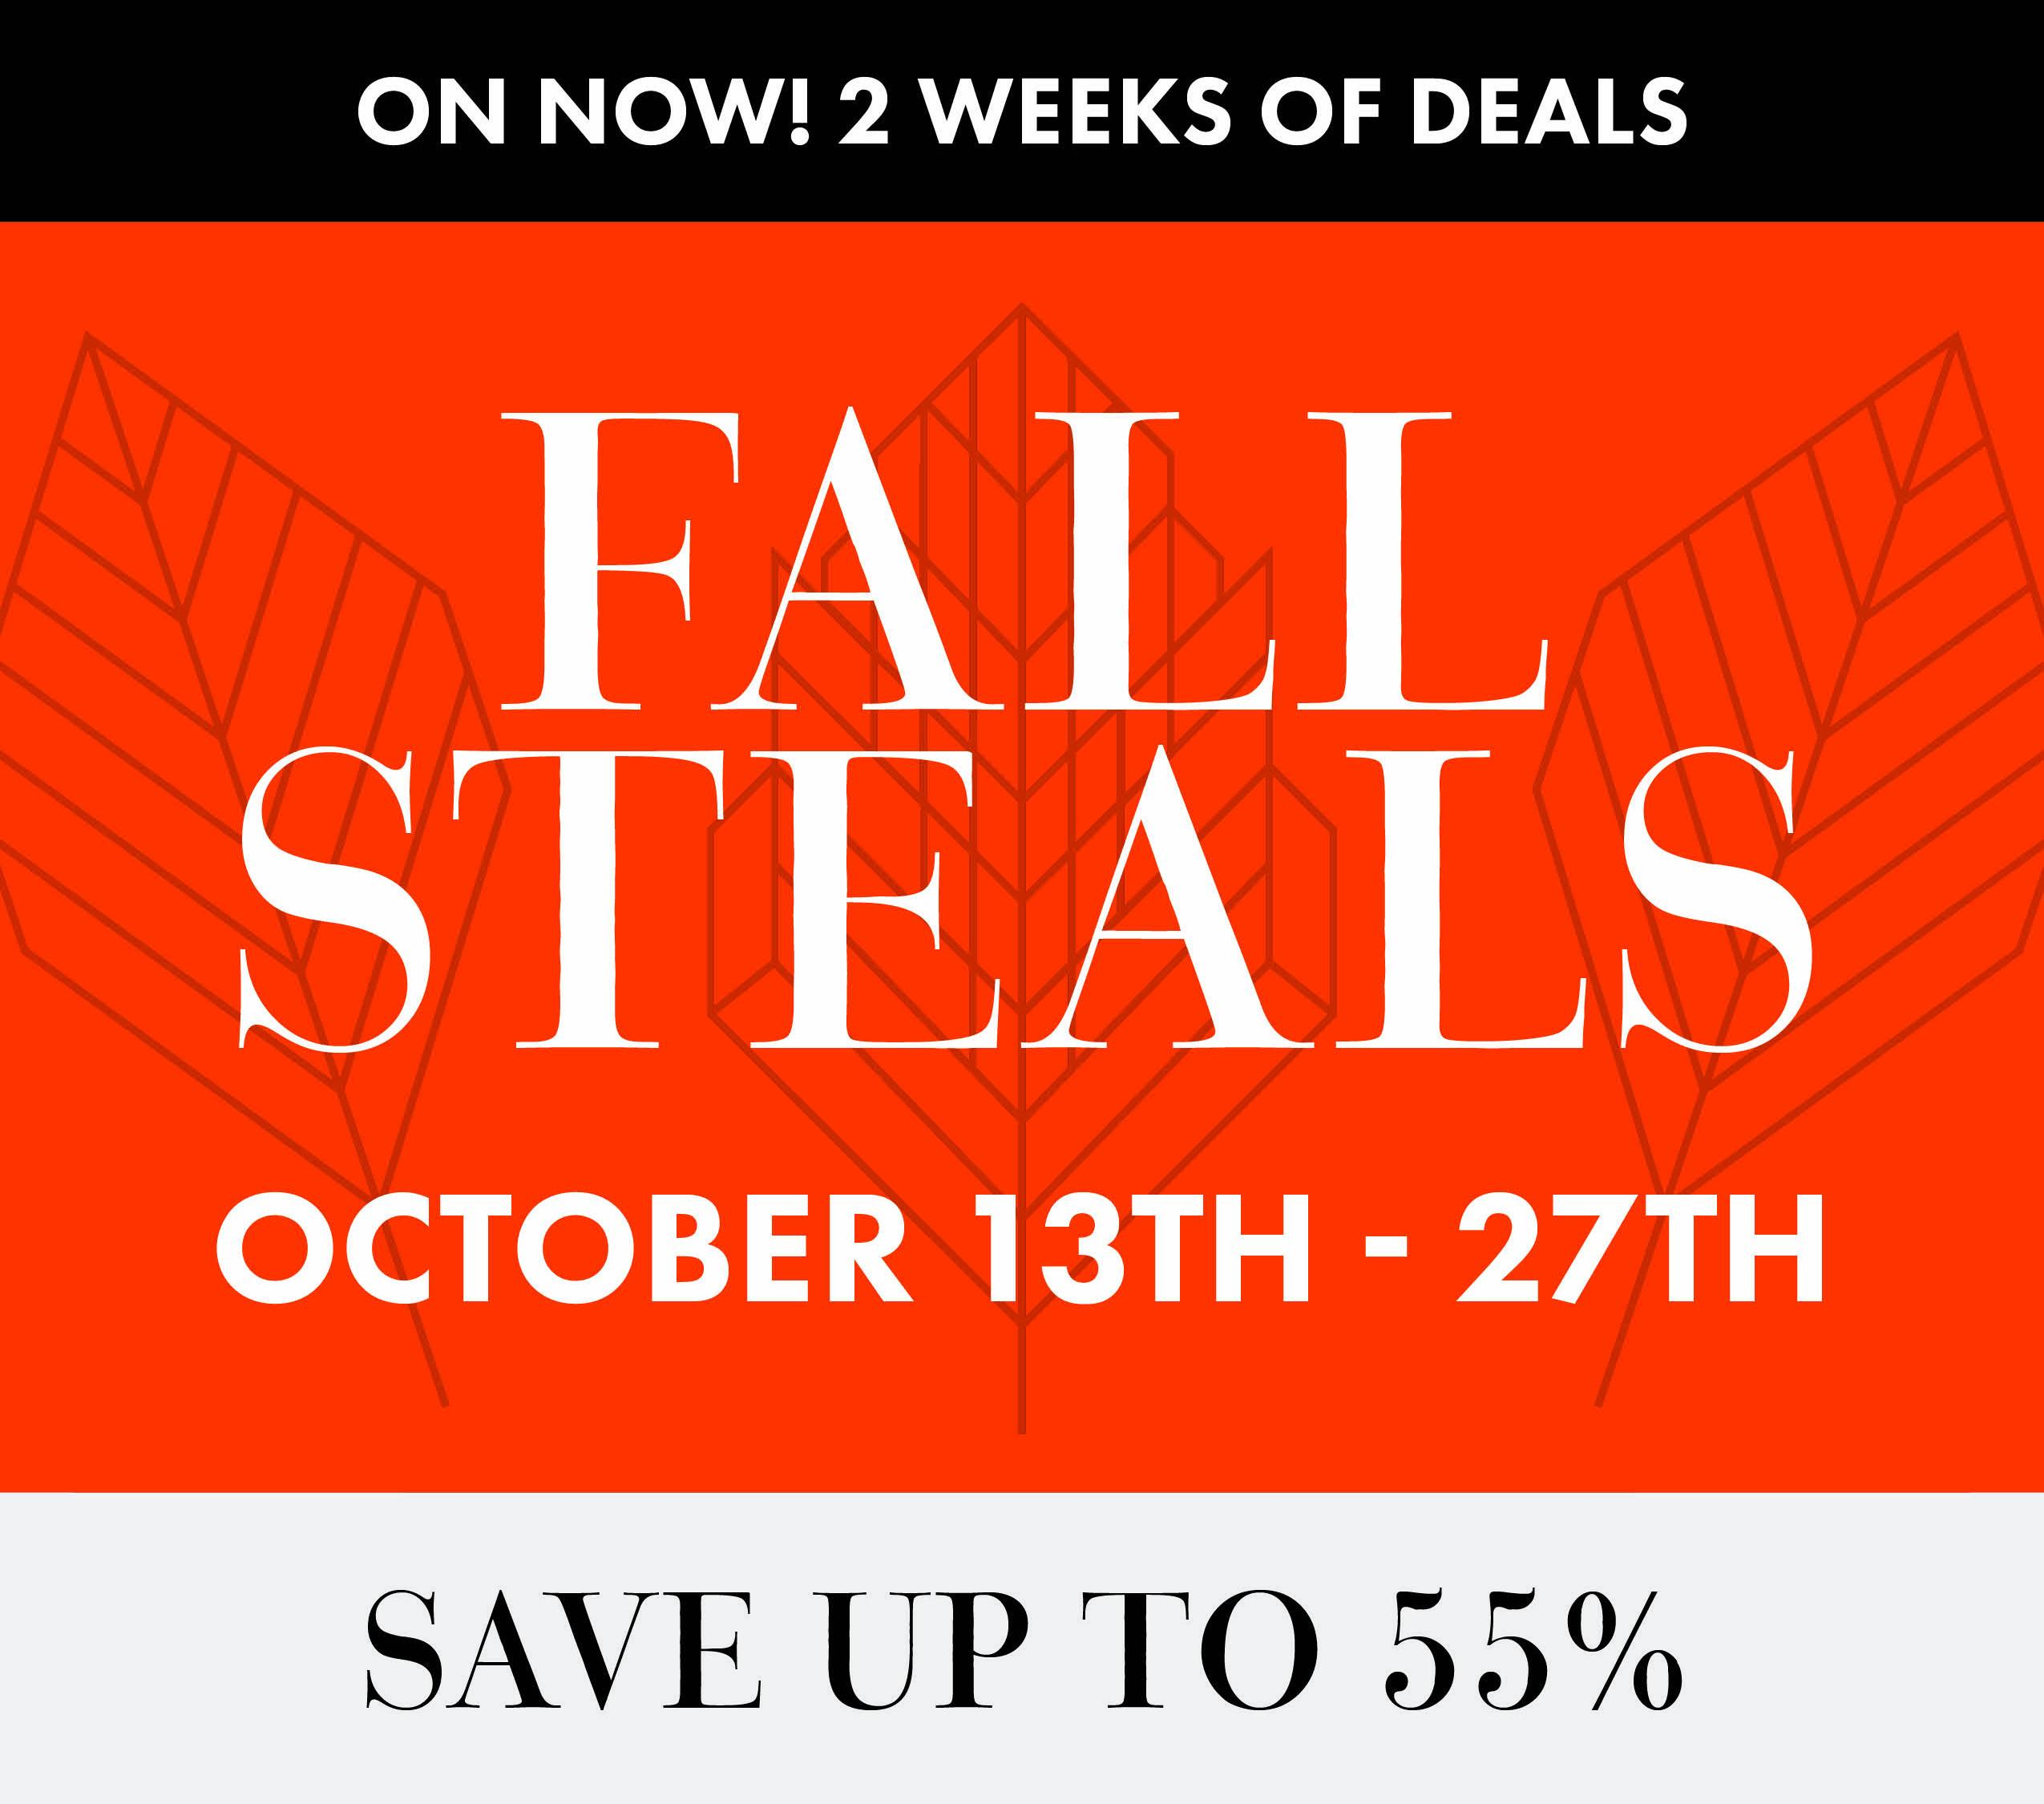 Fall Steals Now